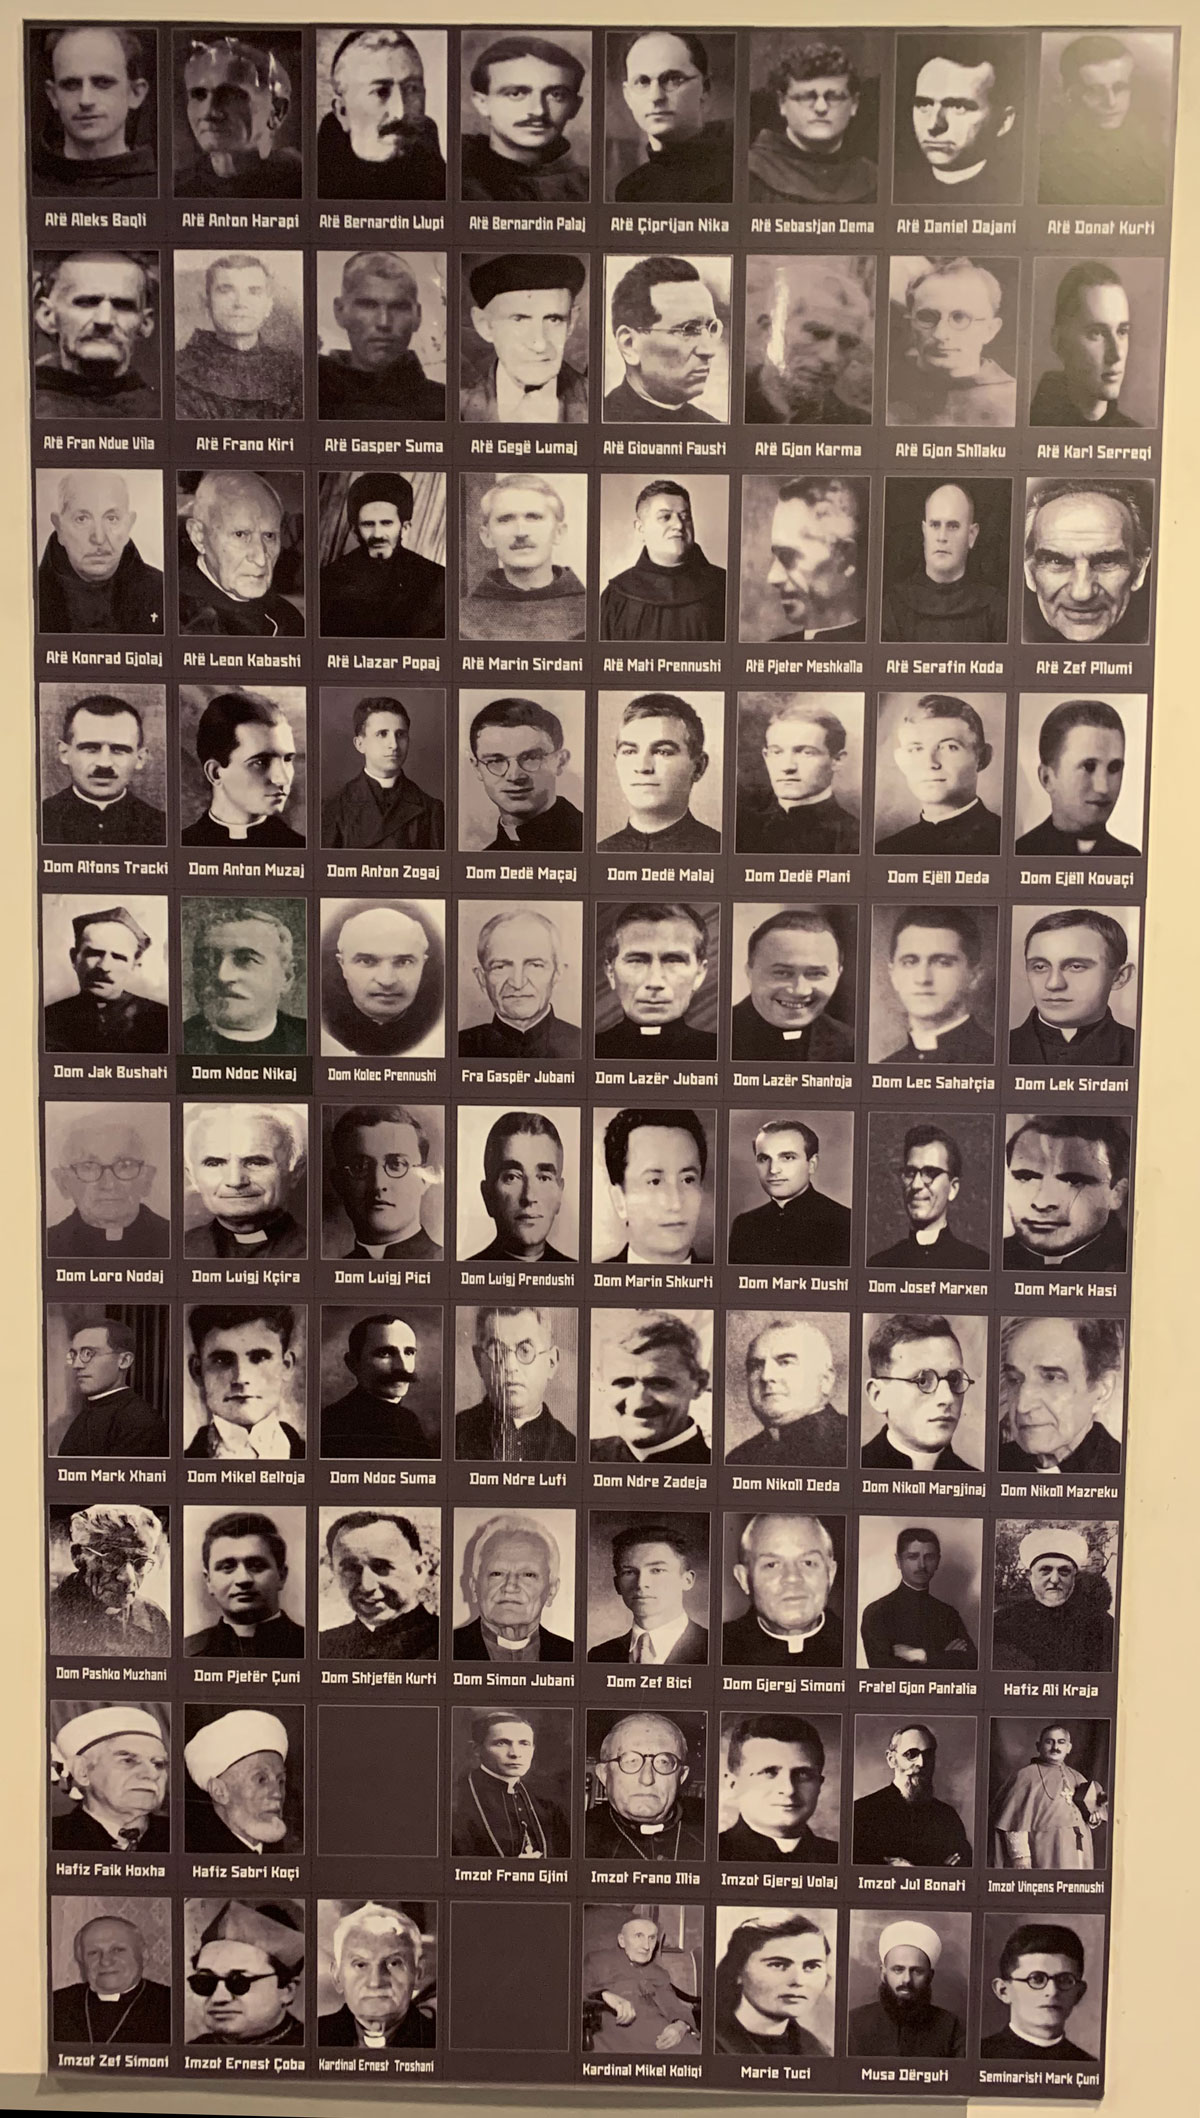 Image of Catholic bishops, priests, and sisters, as well as Islamic clerics put to death by the communist regime.